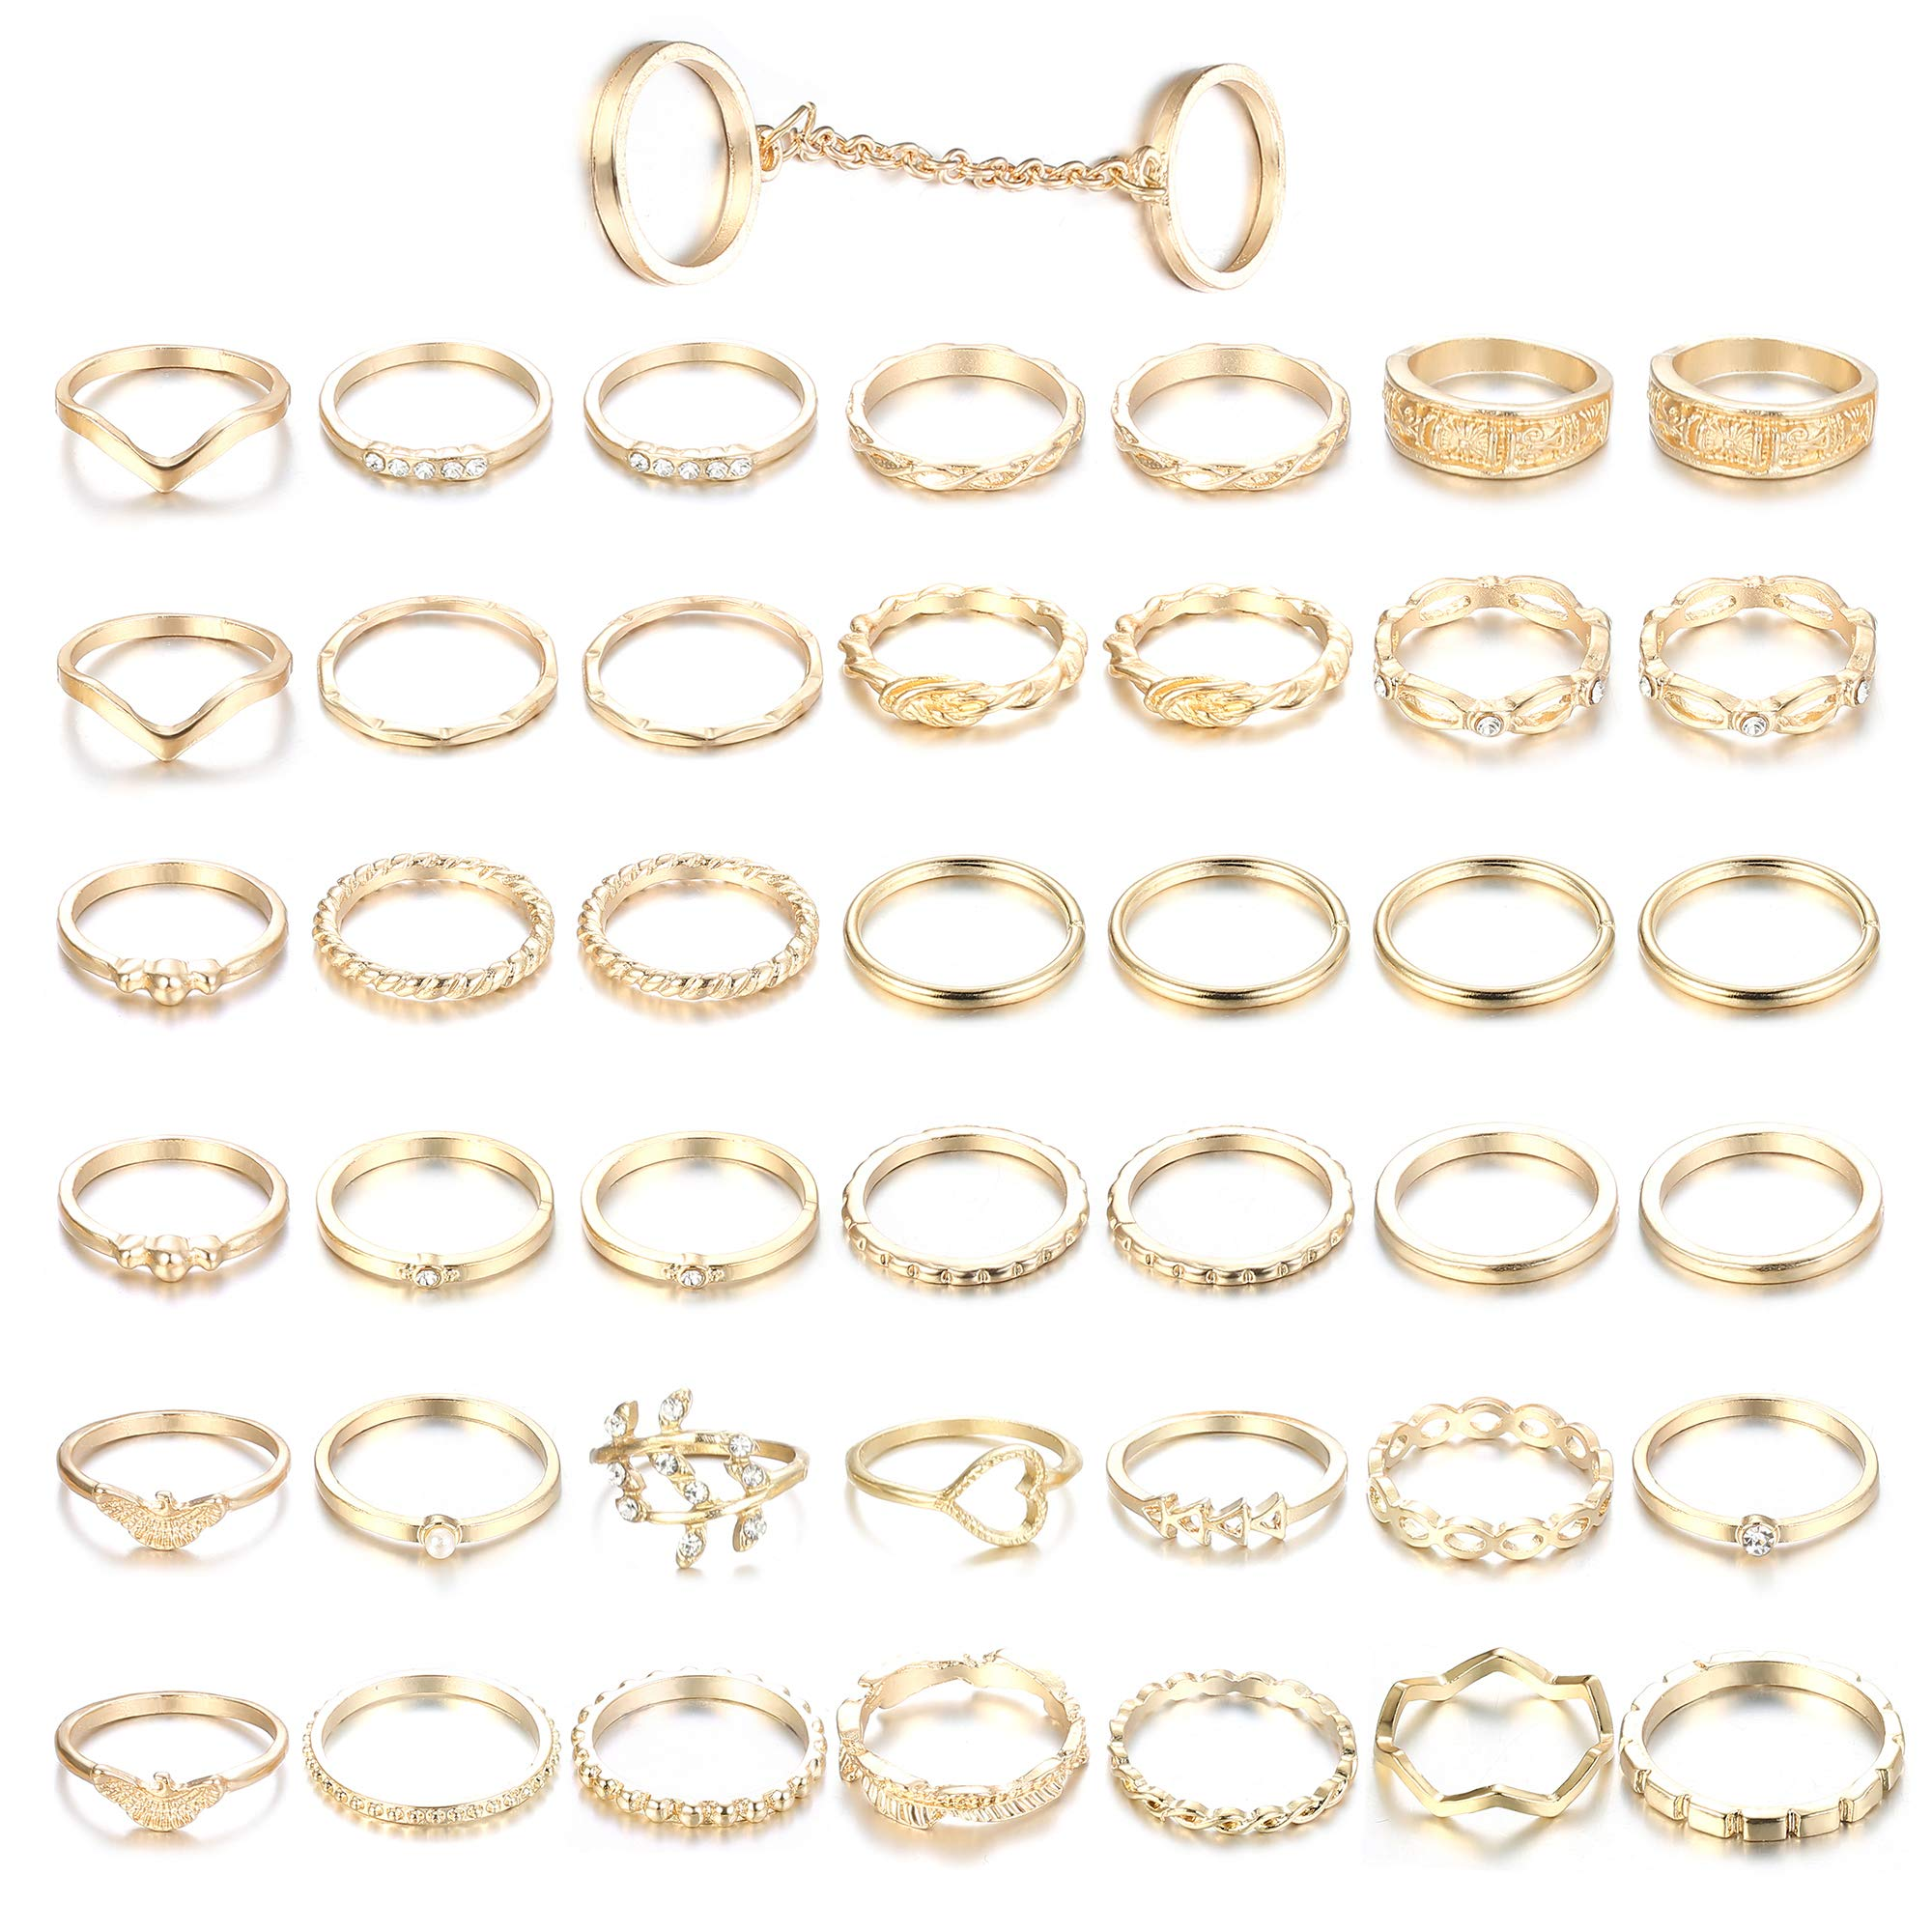 ORAZIO 43PCS Knuckle Rings for Women Mid Finger Stackable Rings Set Gold Tone by ORAZIO